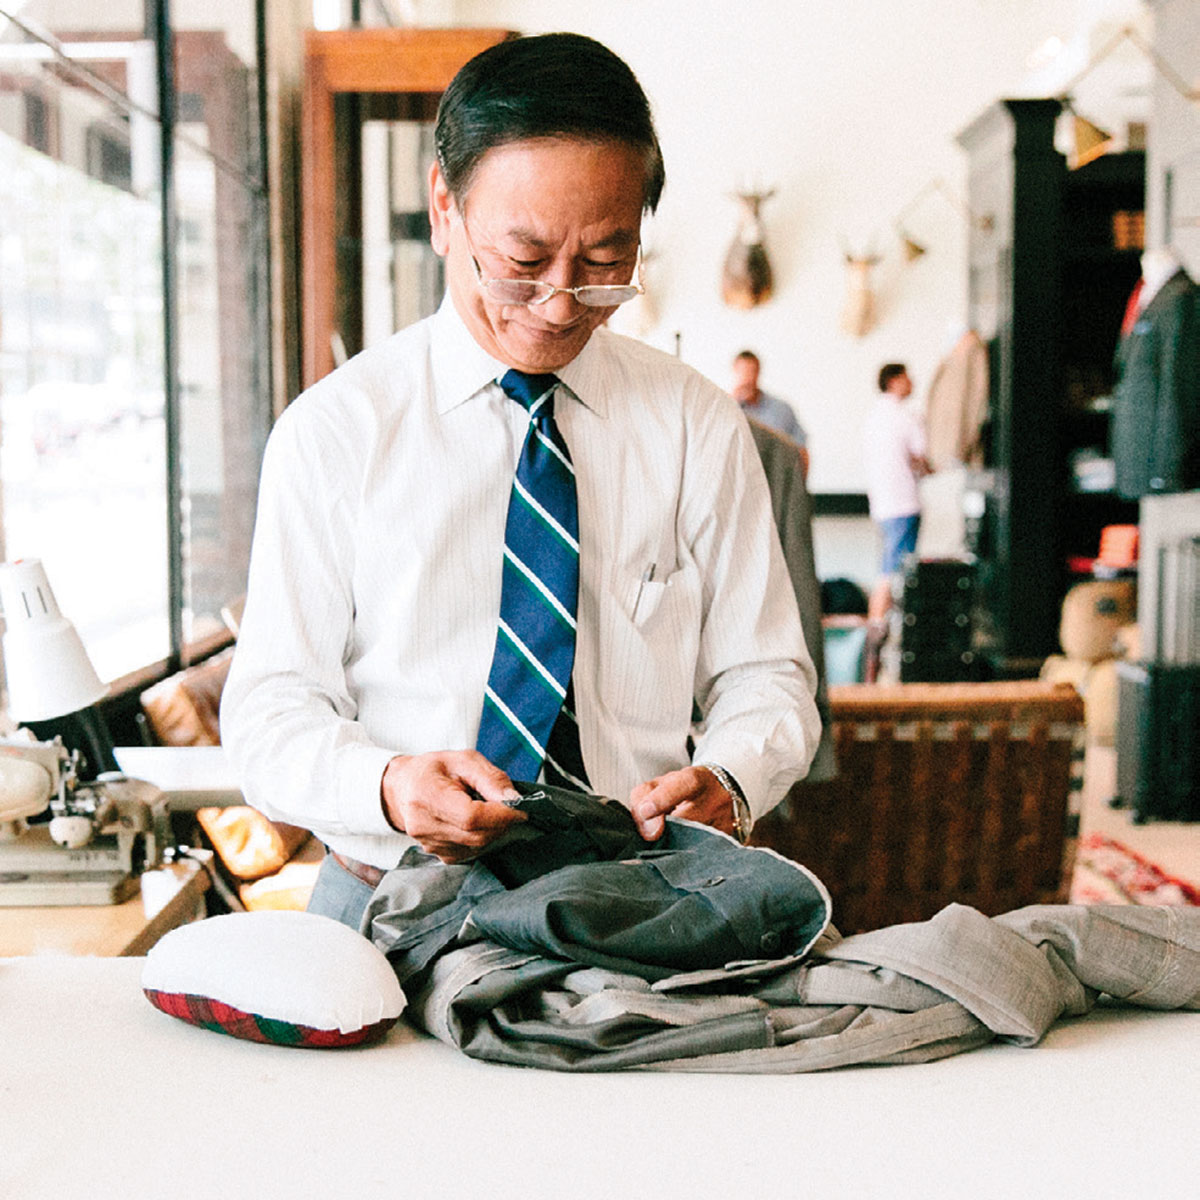 7 Men S Bespoke Boutiques To Visit This Fall